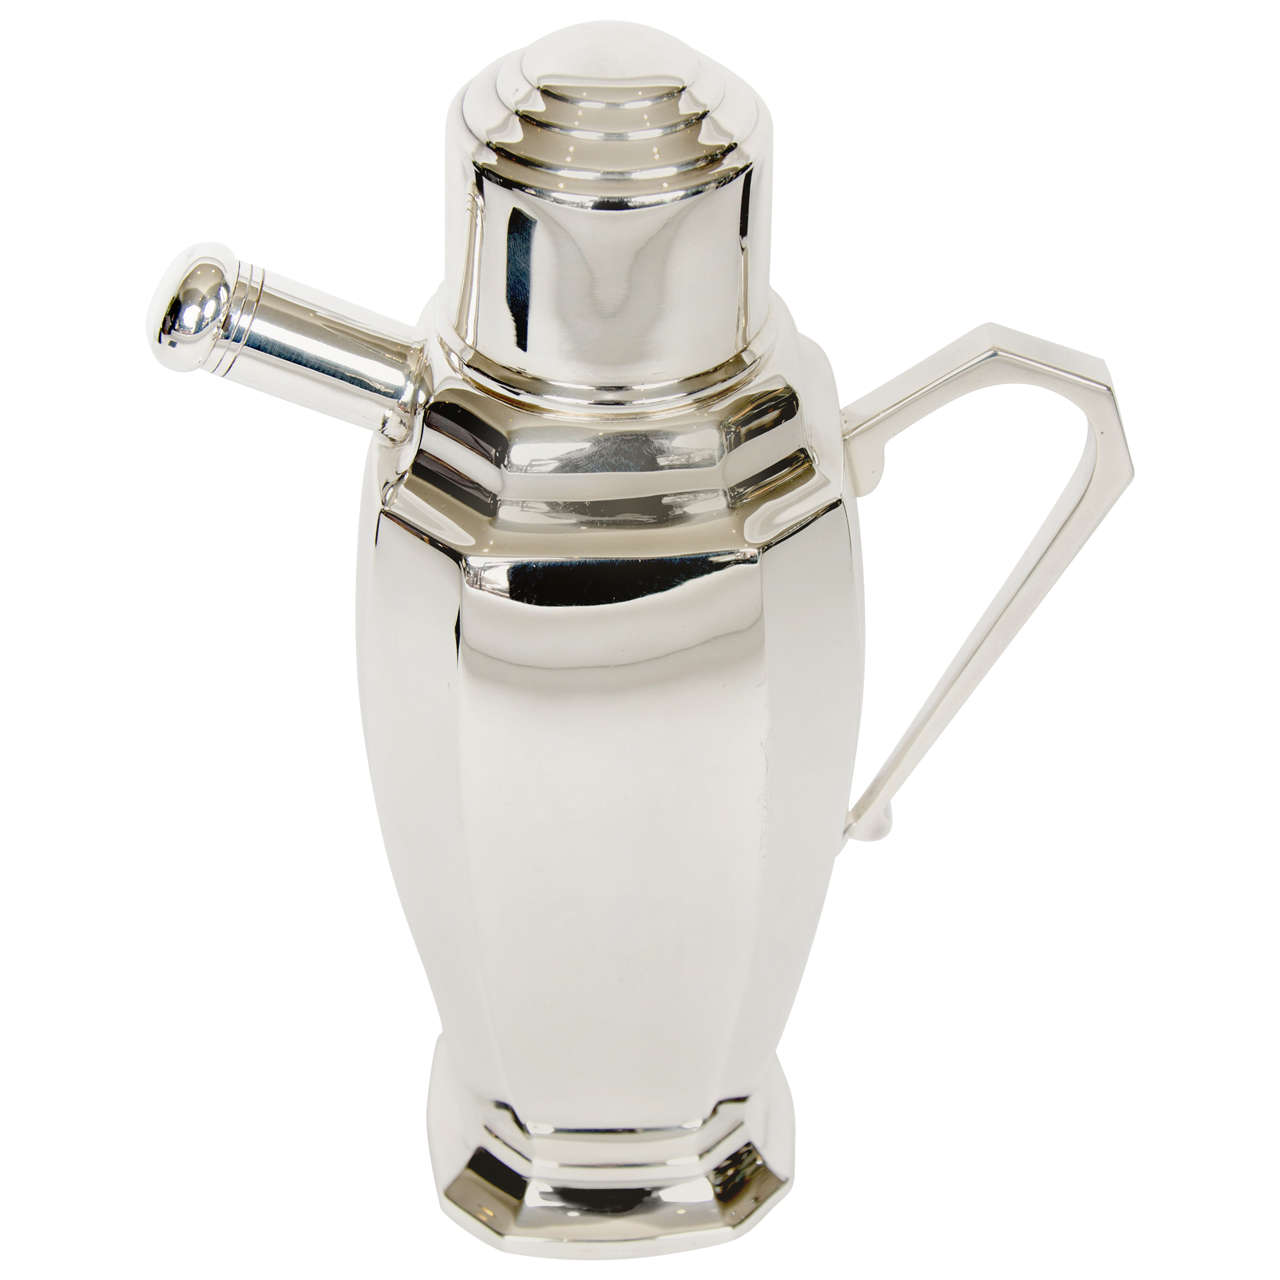 20th Century Silver Plate Cocktail Shaker